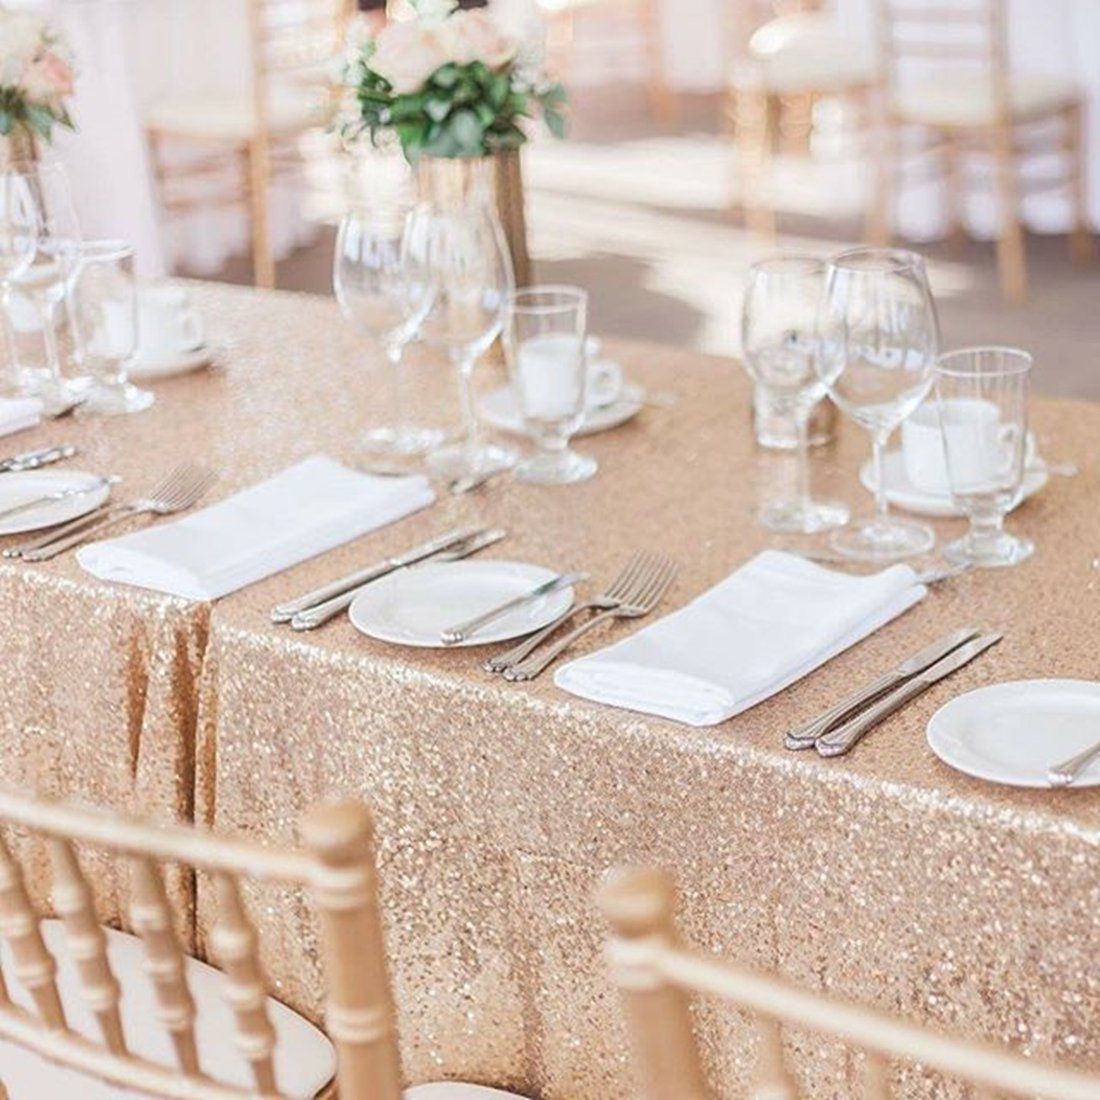 SoarDream Sequin Tablecloth 50x80 inch Champagne Blush Glitter Tablecloth Wedding Table Linen by SoarDream (Image #5)